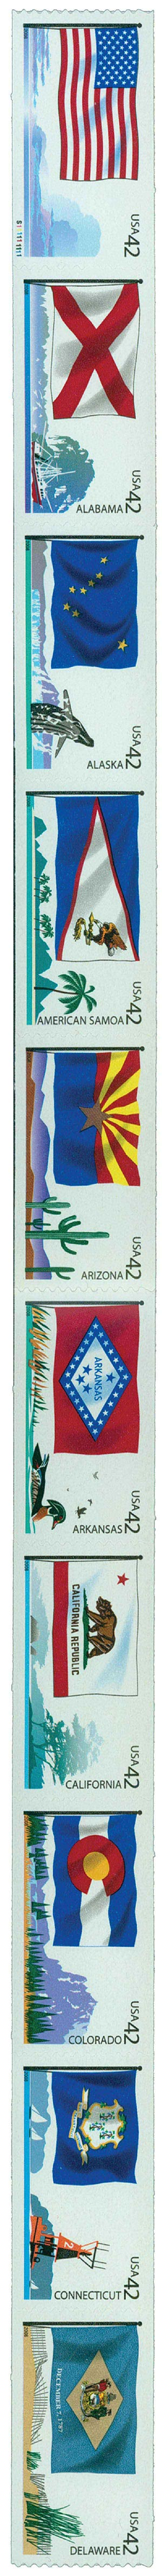 2008 42c Flags of Our Nation, strip of 10 stamps